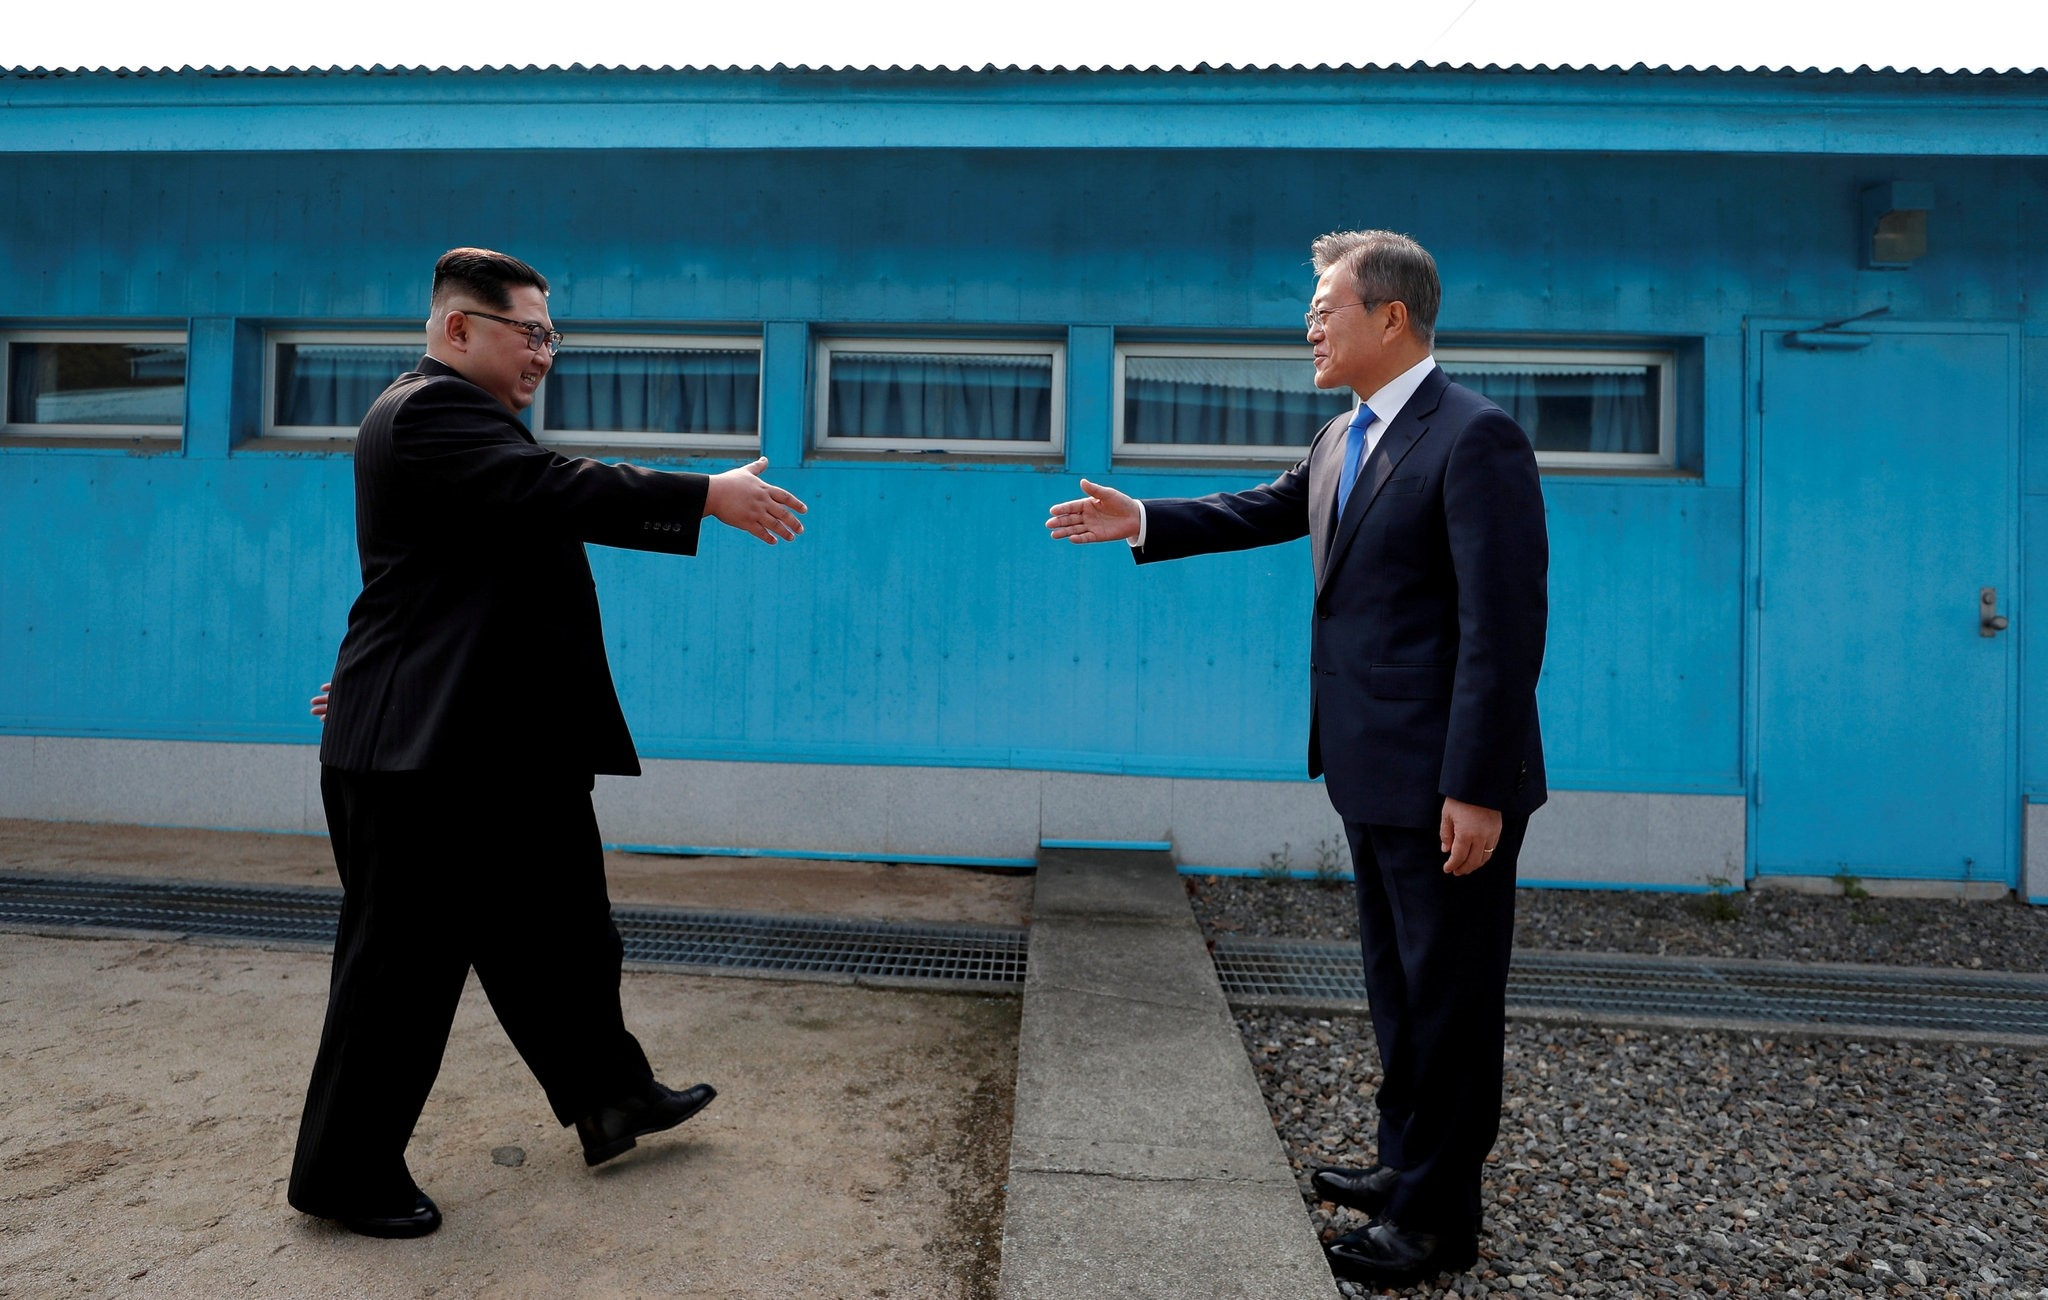 North Korean leader Kim Jong-un and  South Korean President Moon Jae-in shake hands at the truce village of Panmunjom inside the Demilitarized Zone separating the two Koreas, April 27.